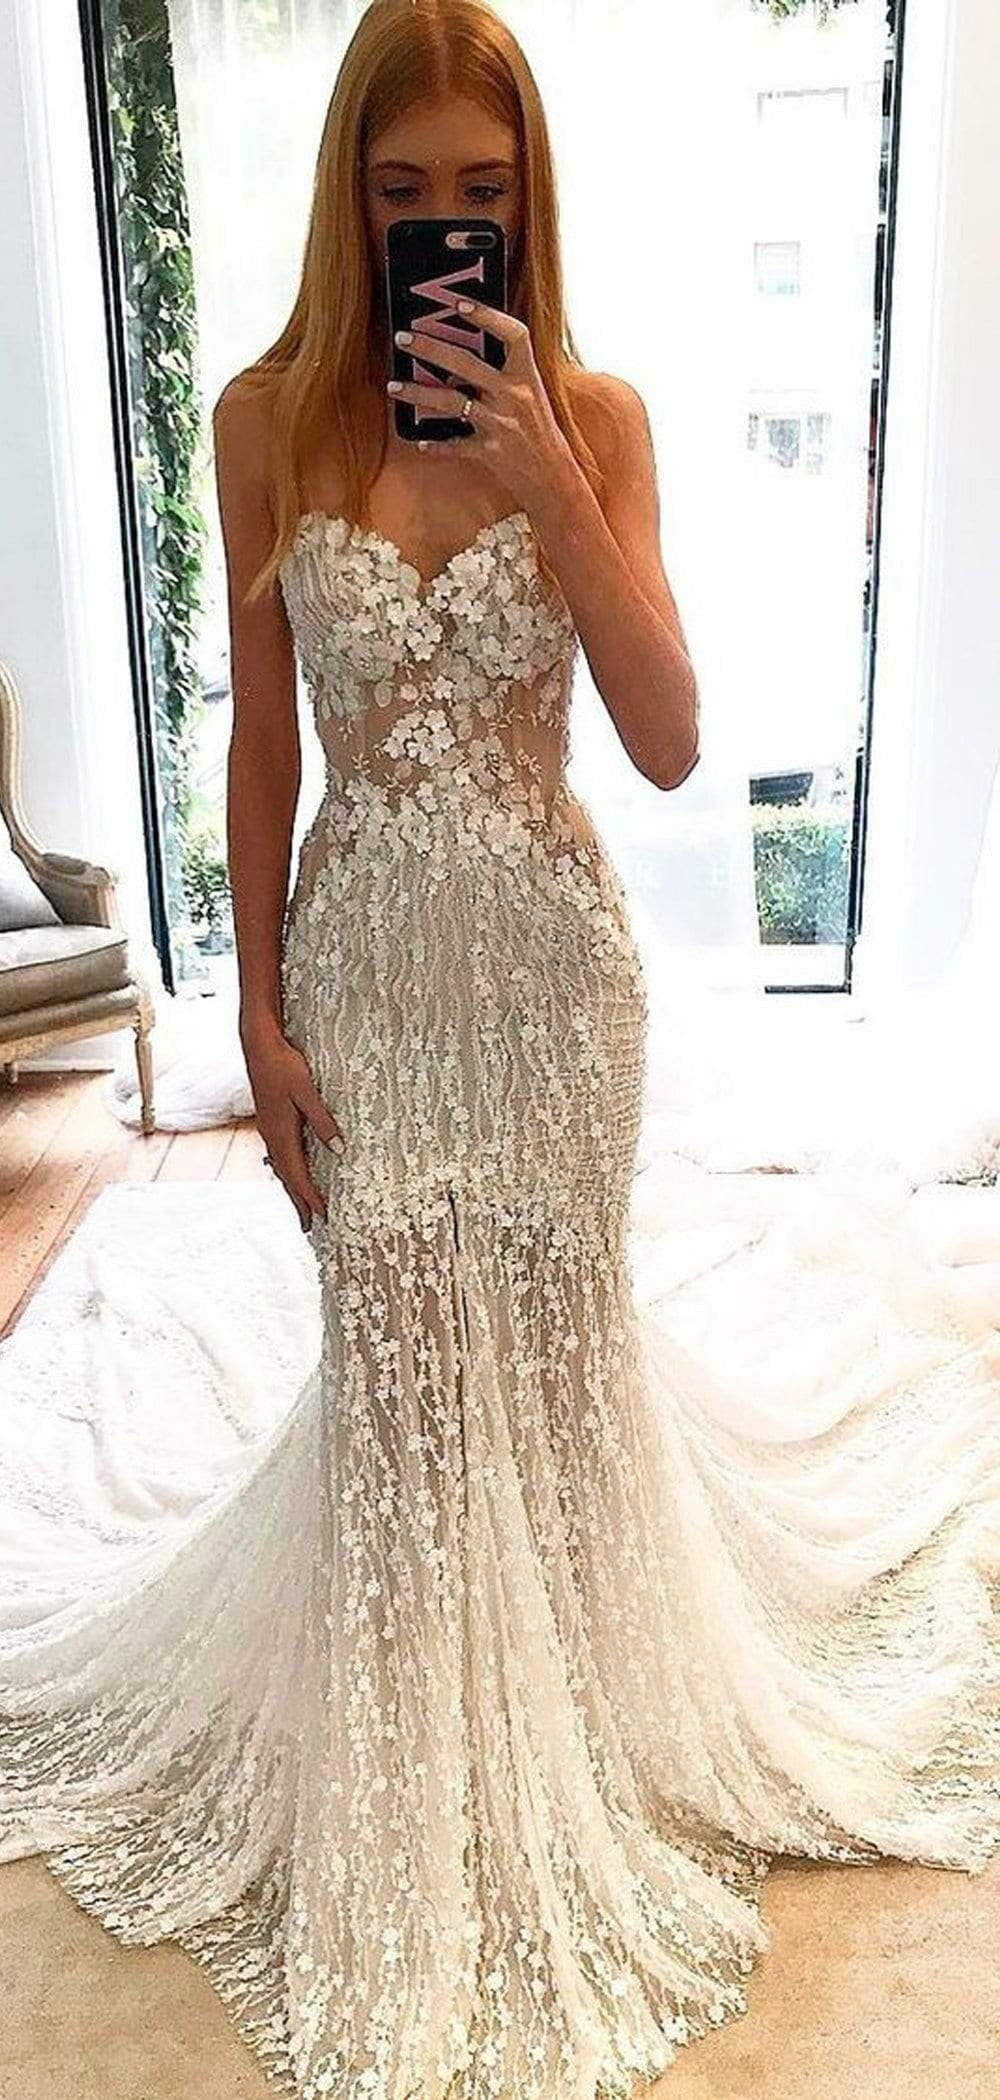 Stunning Lace Applique Sweetheart Strapless Mermaid Wedding Dresses , AB1509